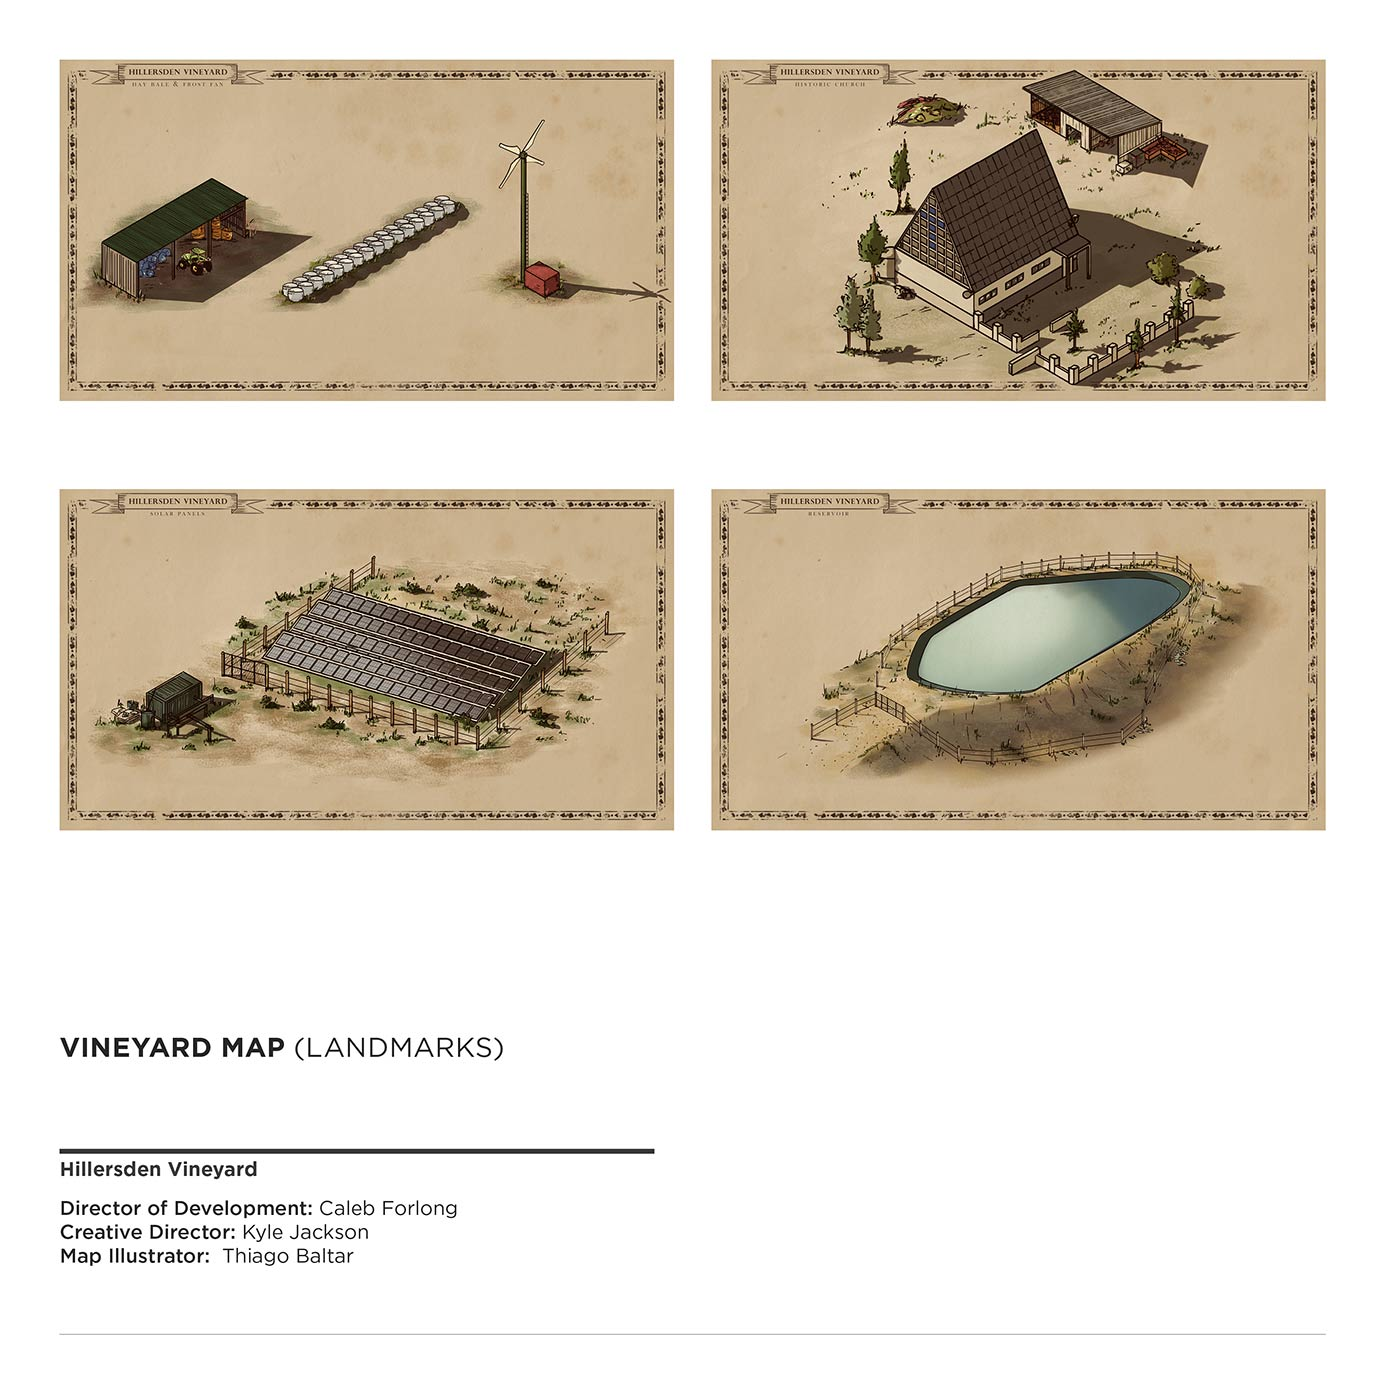 VineyardLandmarks_2